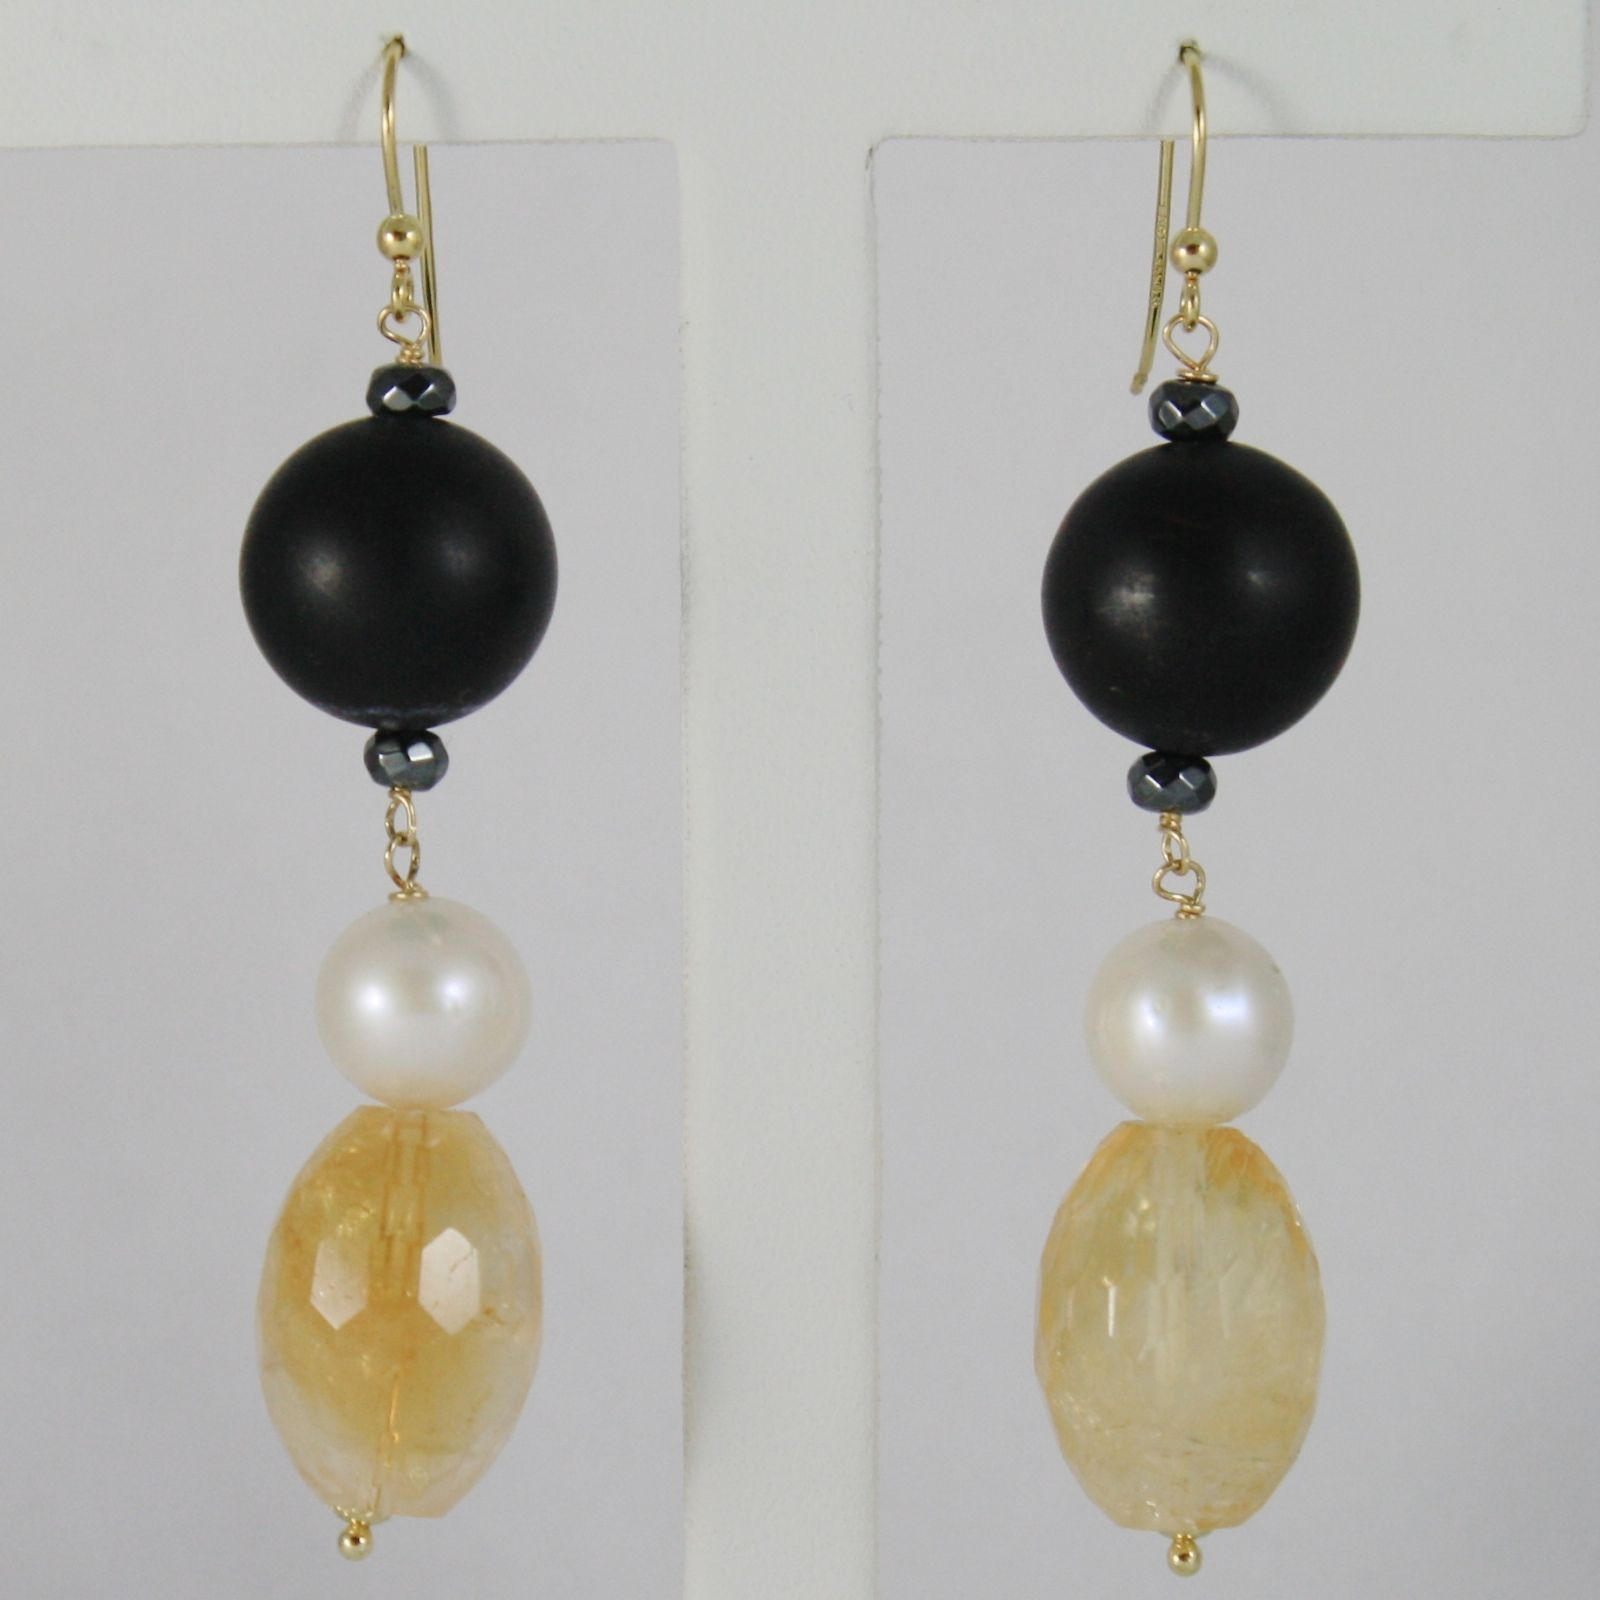 18K YELLOW GOLD PENDANT EARRINGS, CITRINE, SANDBLASTED ONYX, PEARLS, ITALY MADE